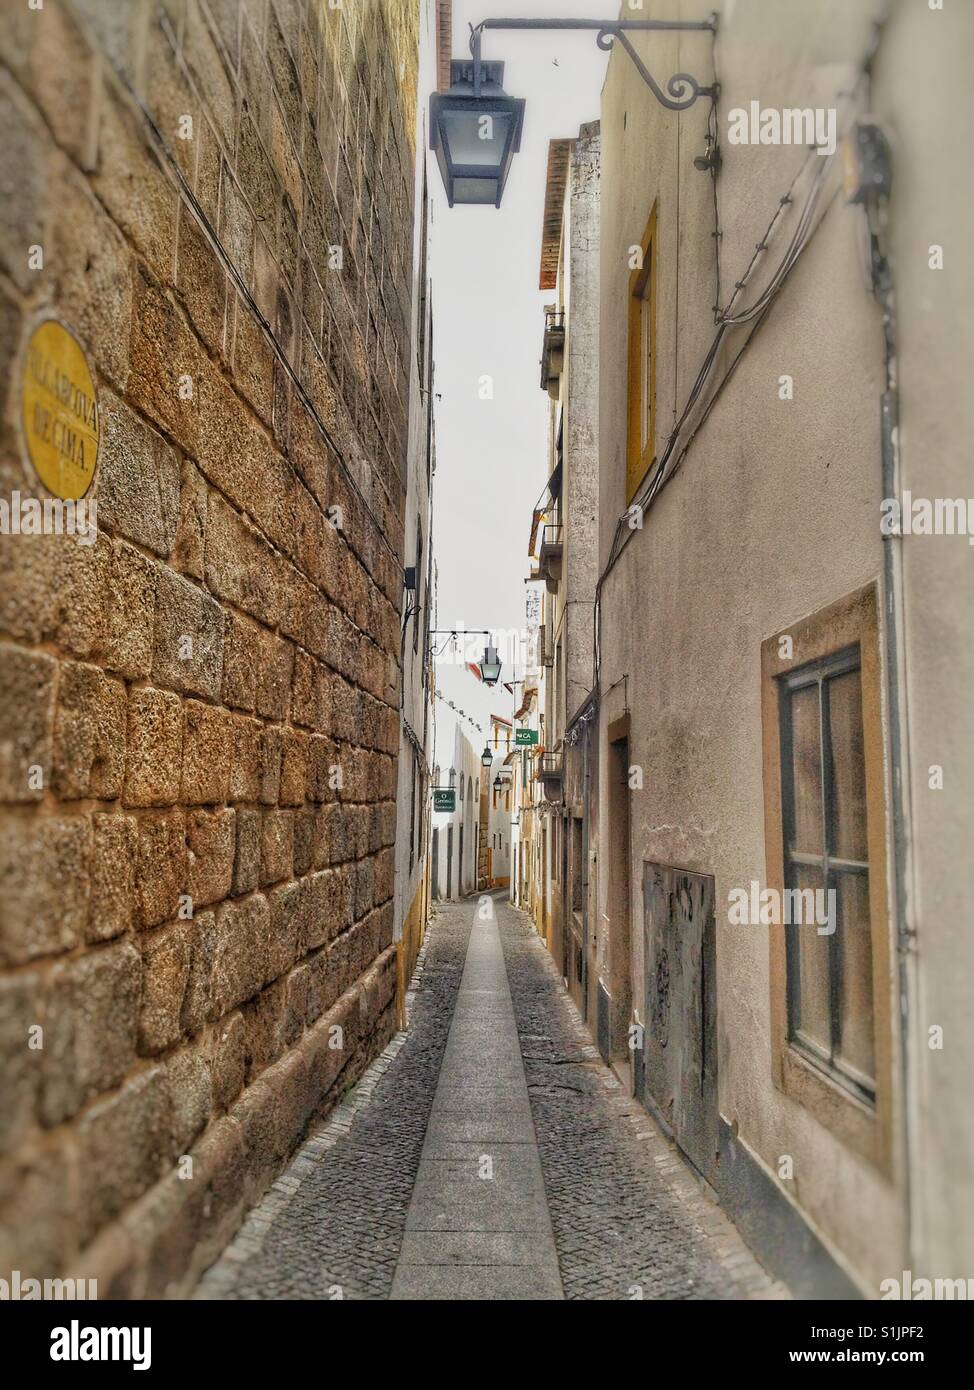 Typical narrow  street in Lisbon, Portugal. Stock Photo